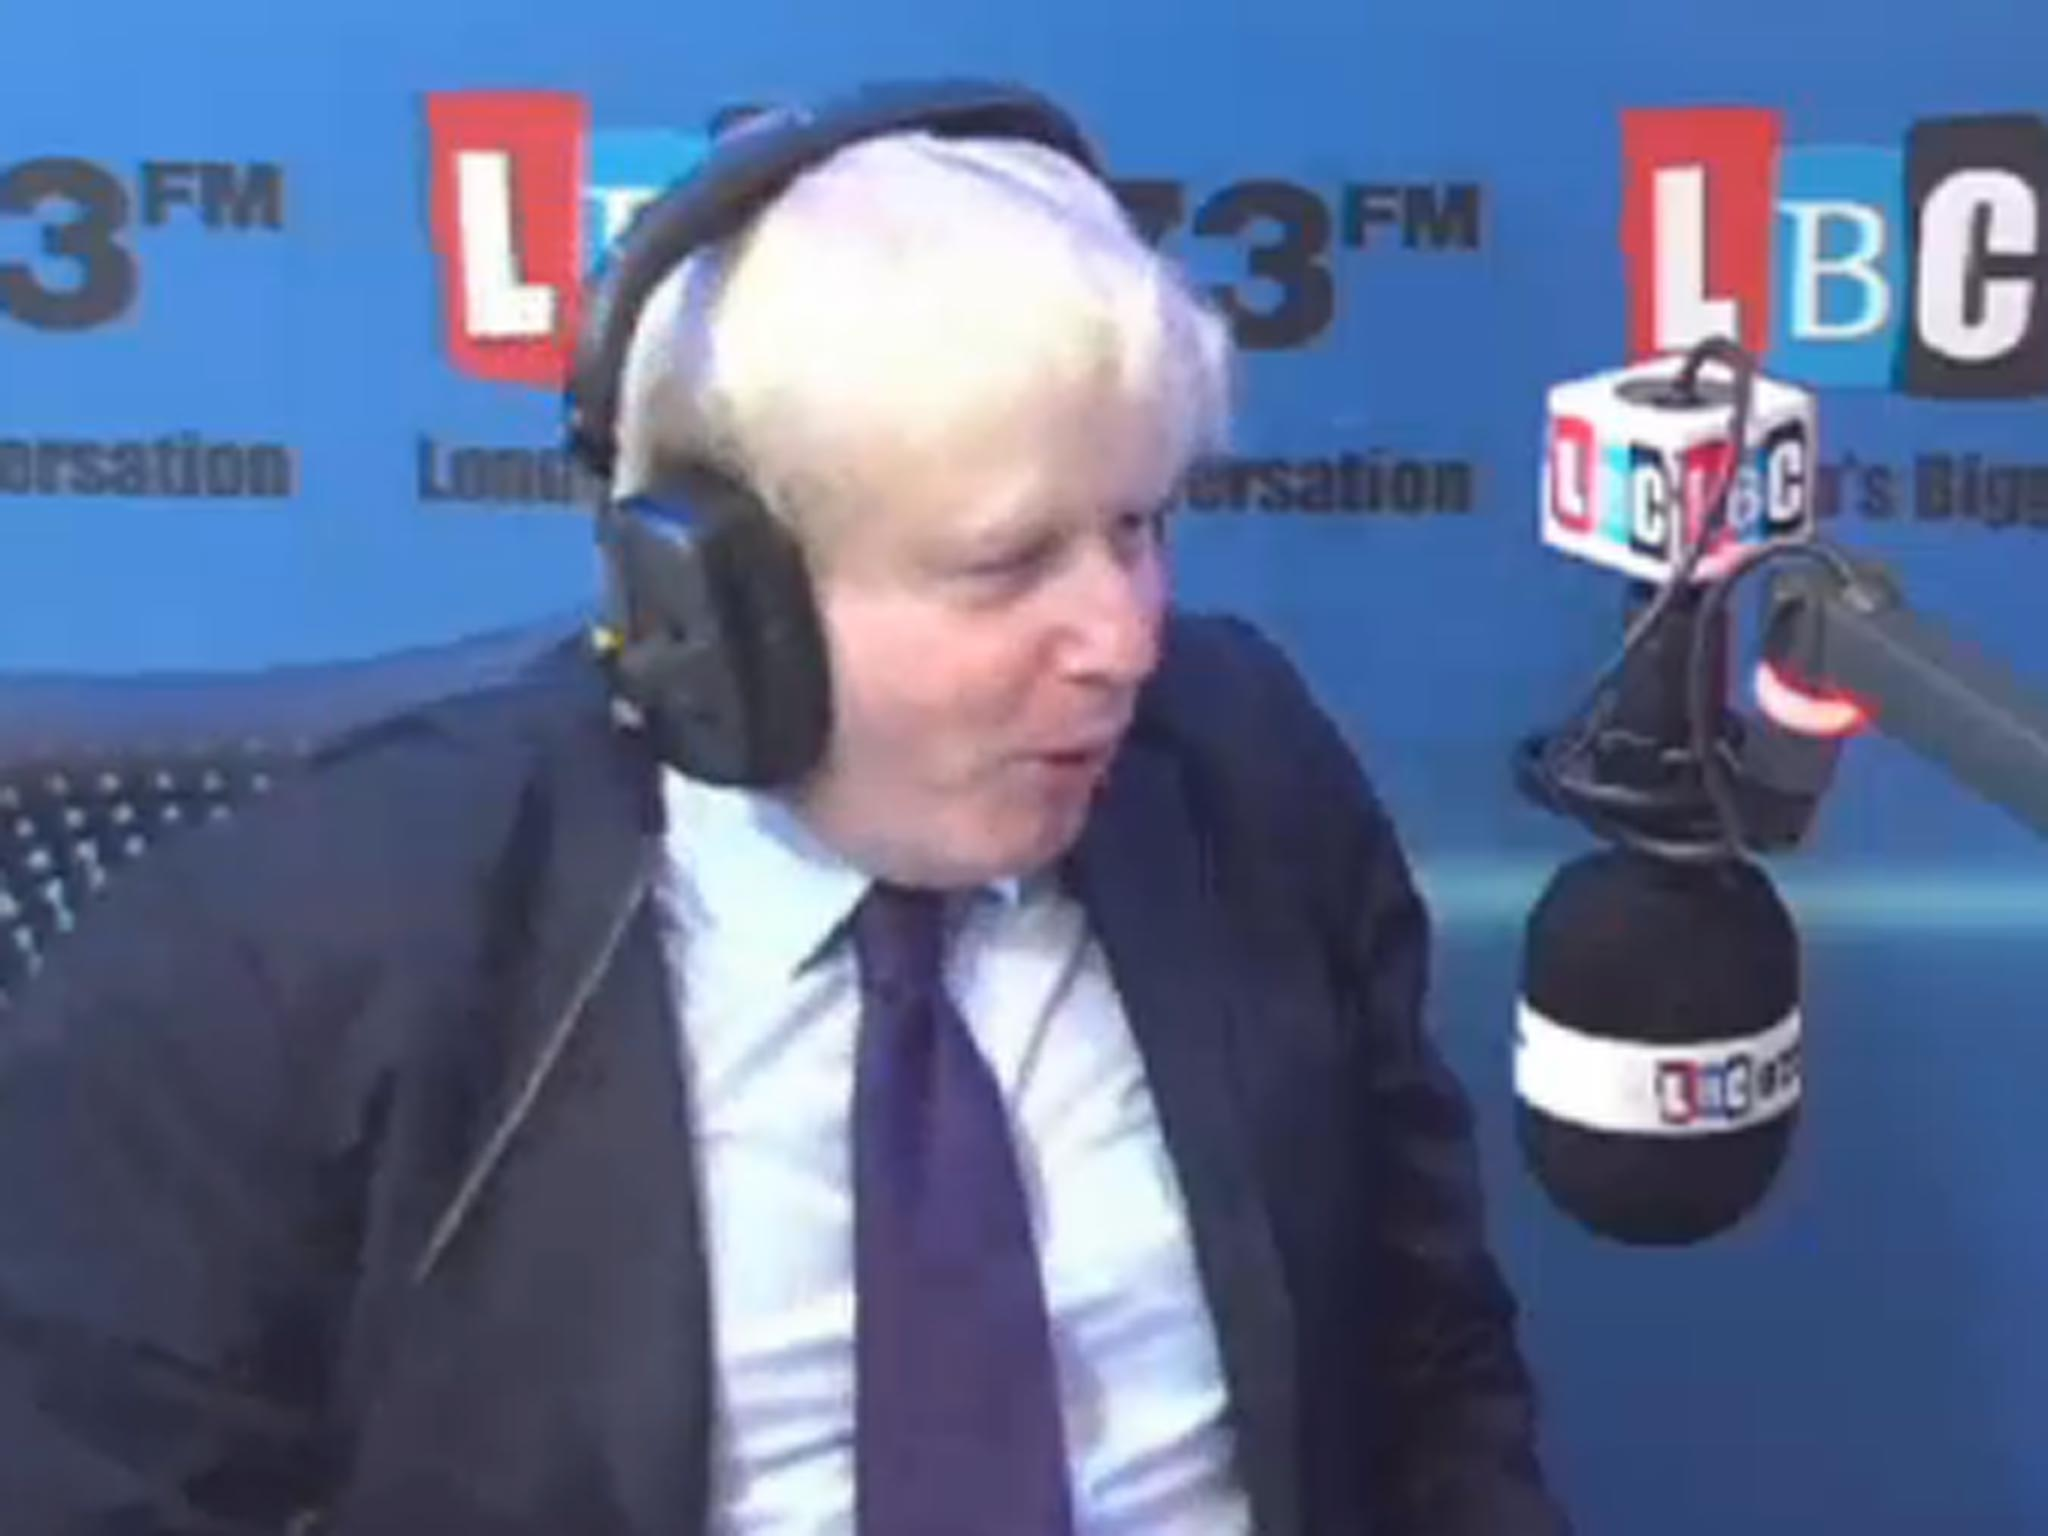 Video: Boris Johnson fails IQ test | The Independent